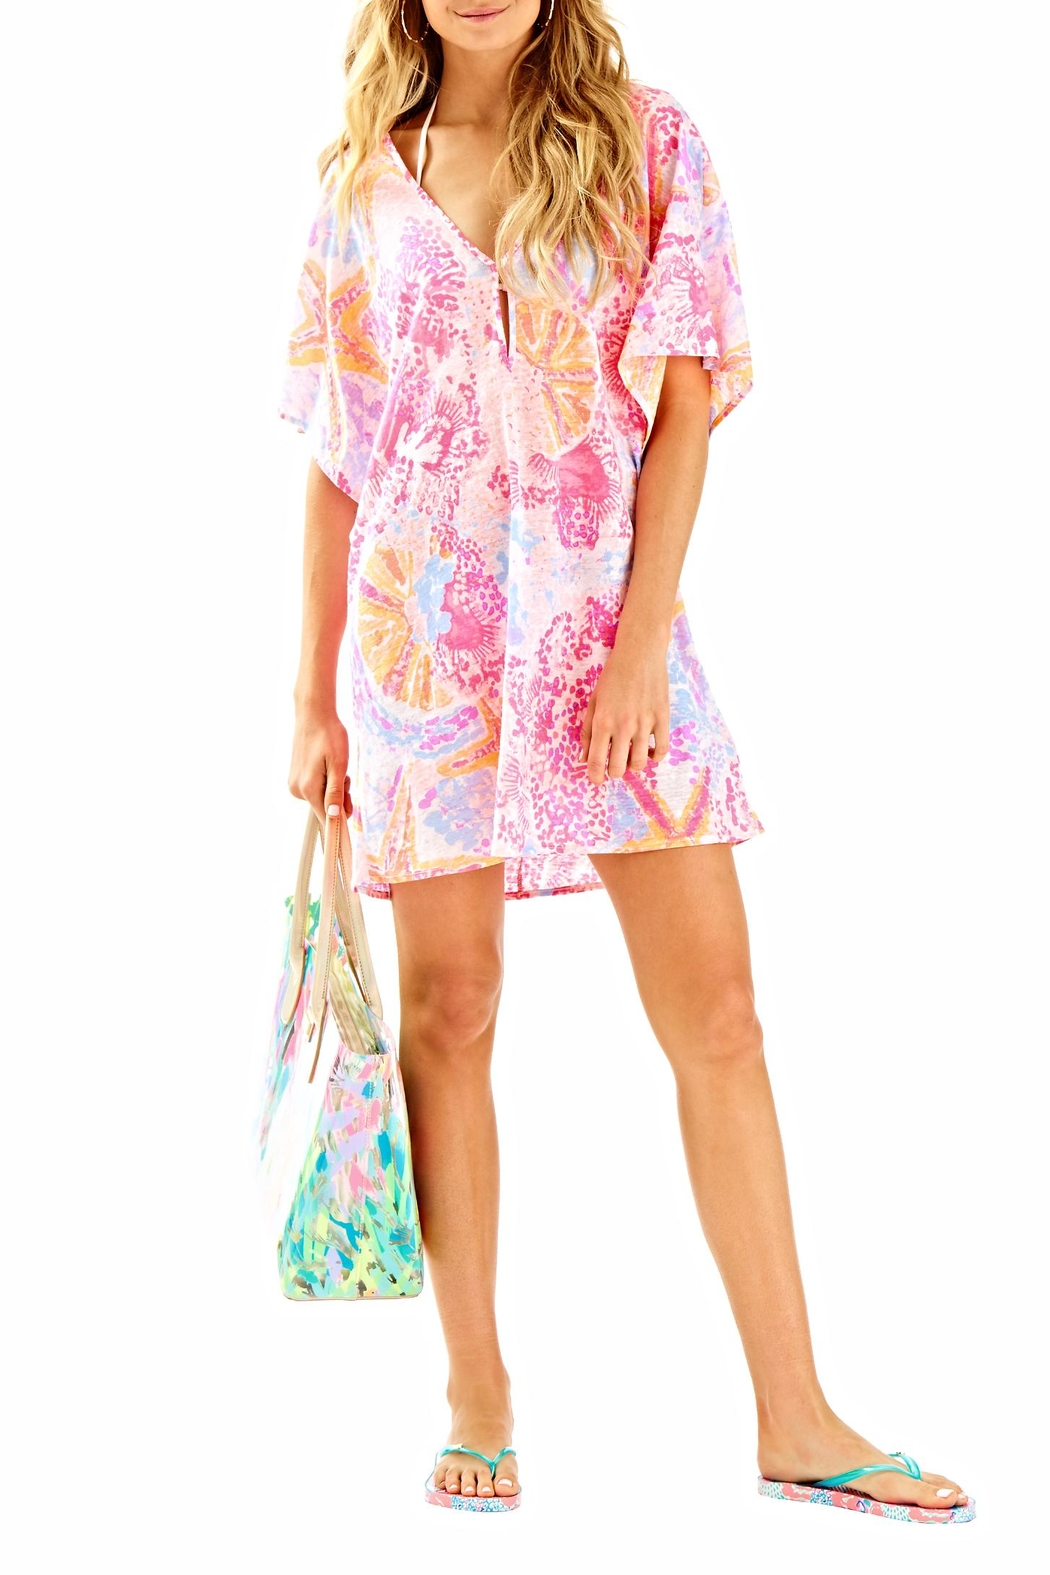 Lilly Pulitzer Balleta Cover Up From Sandestin Golf And Beach Resort